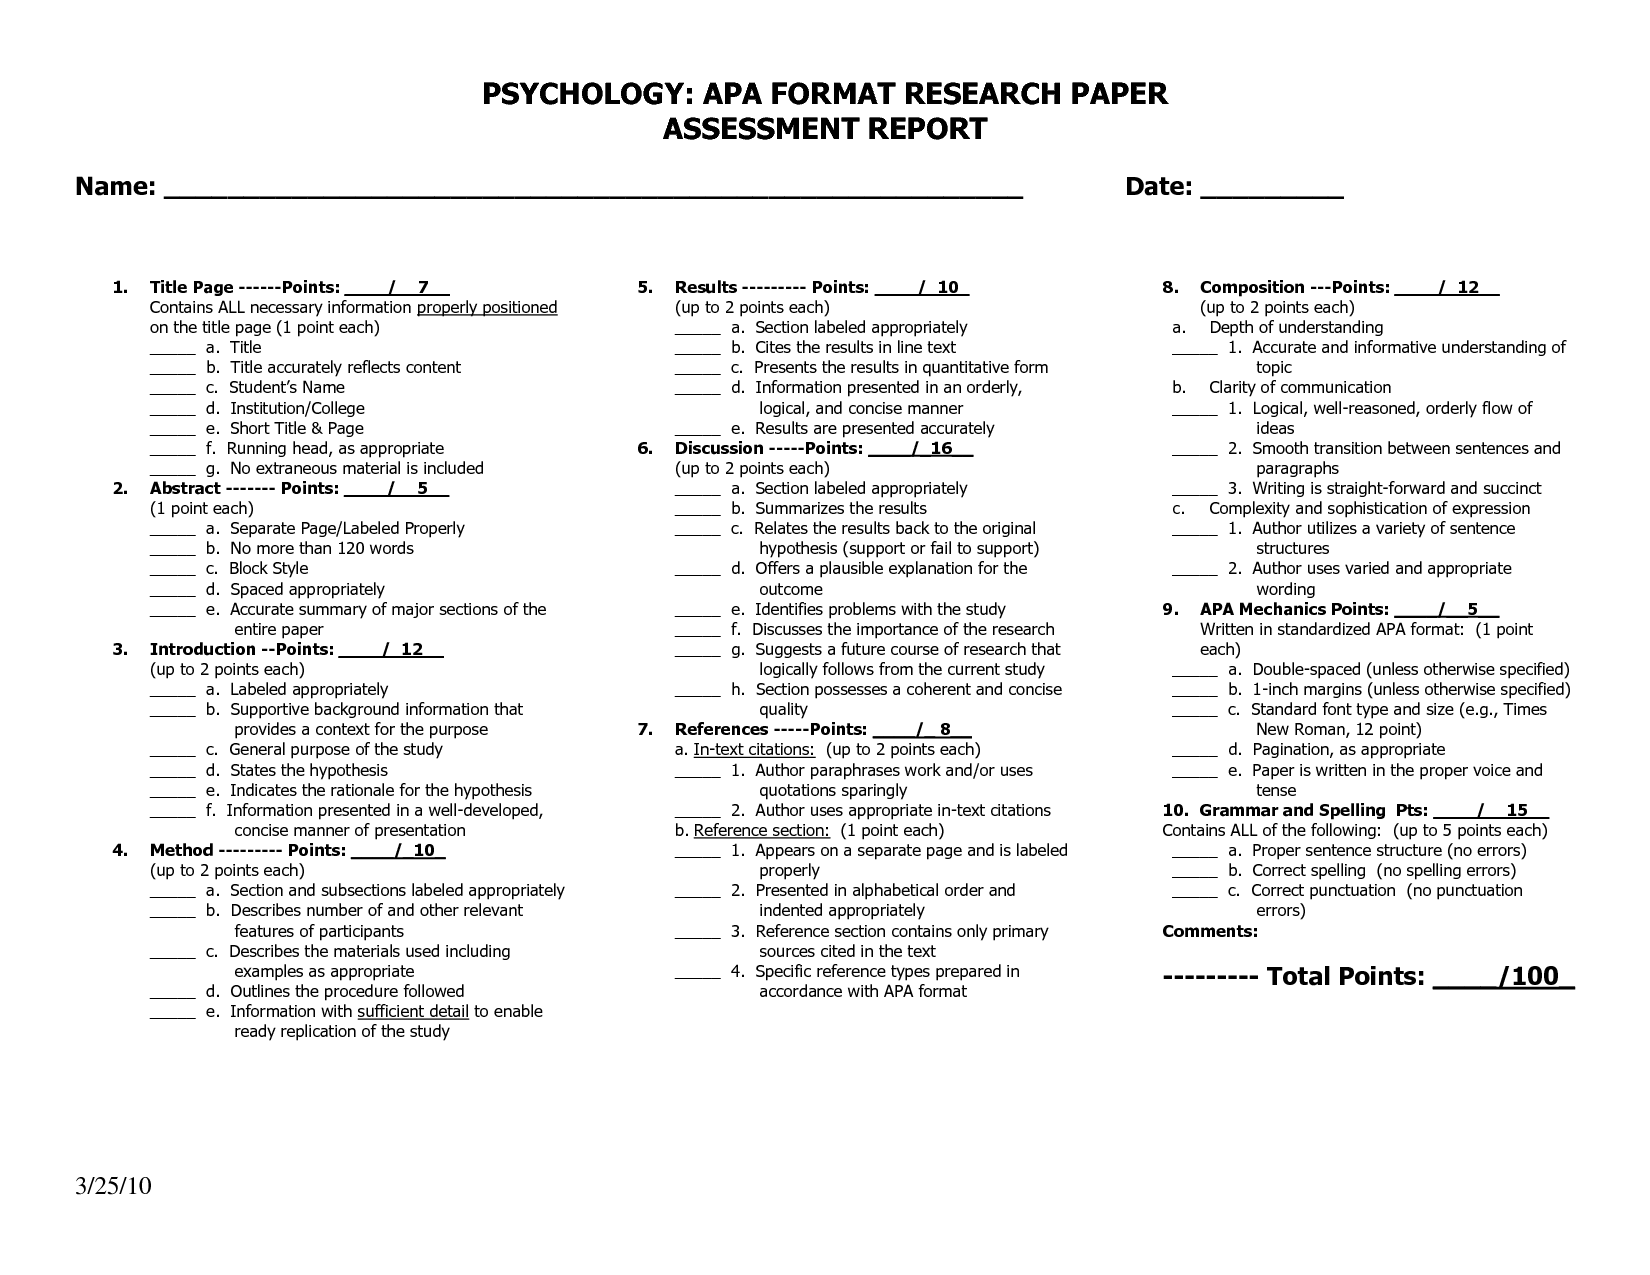 012 Research Paper On Psychology Apamat Wonderful Free Forensic Pdf Topics Full